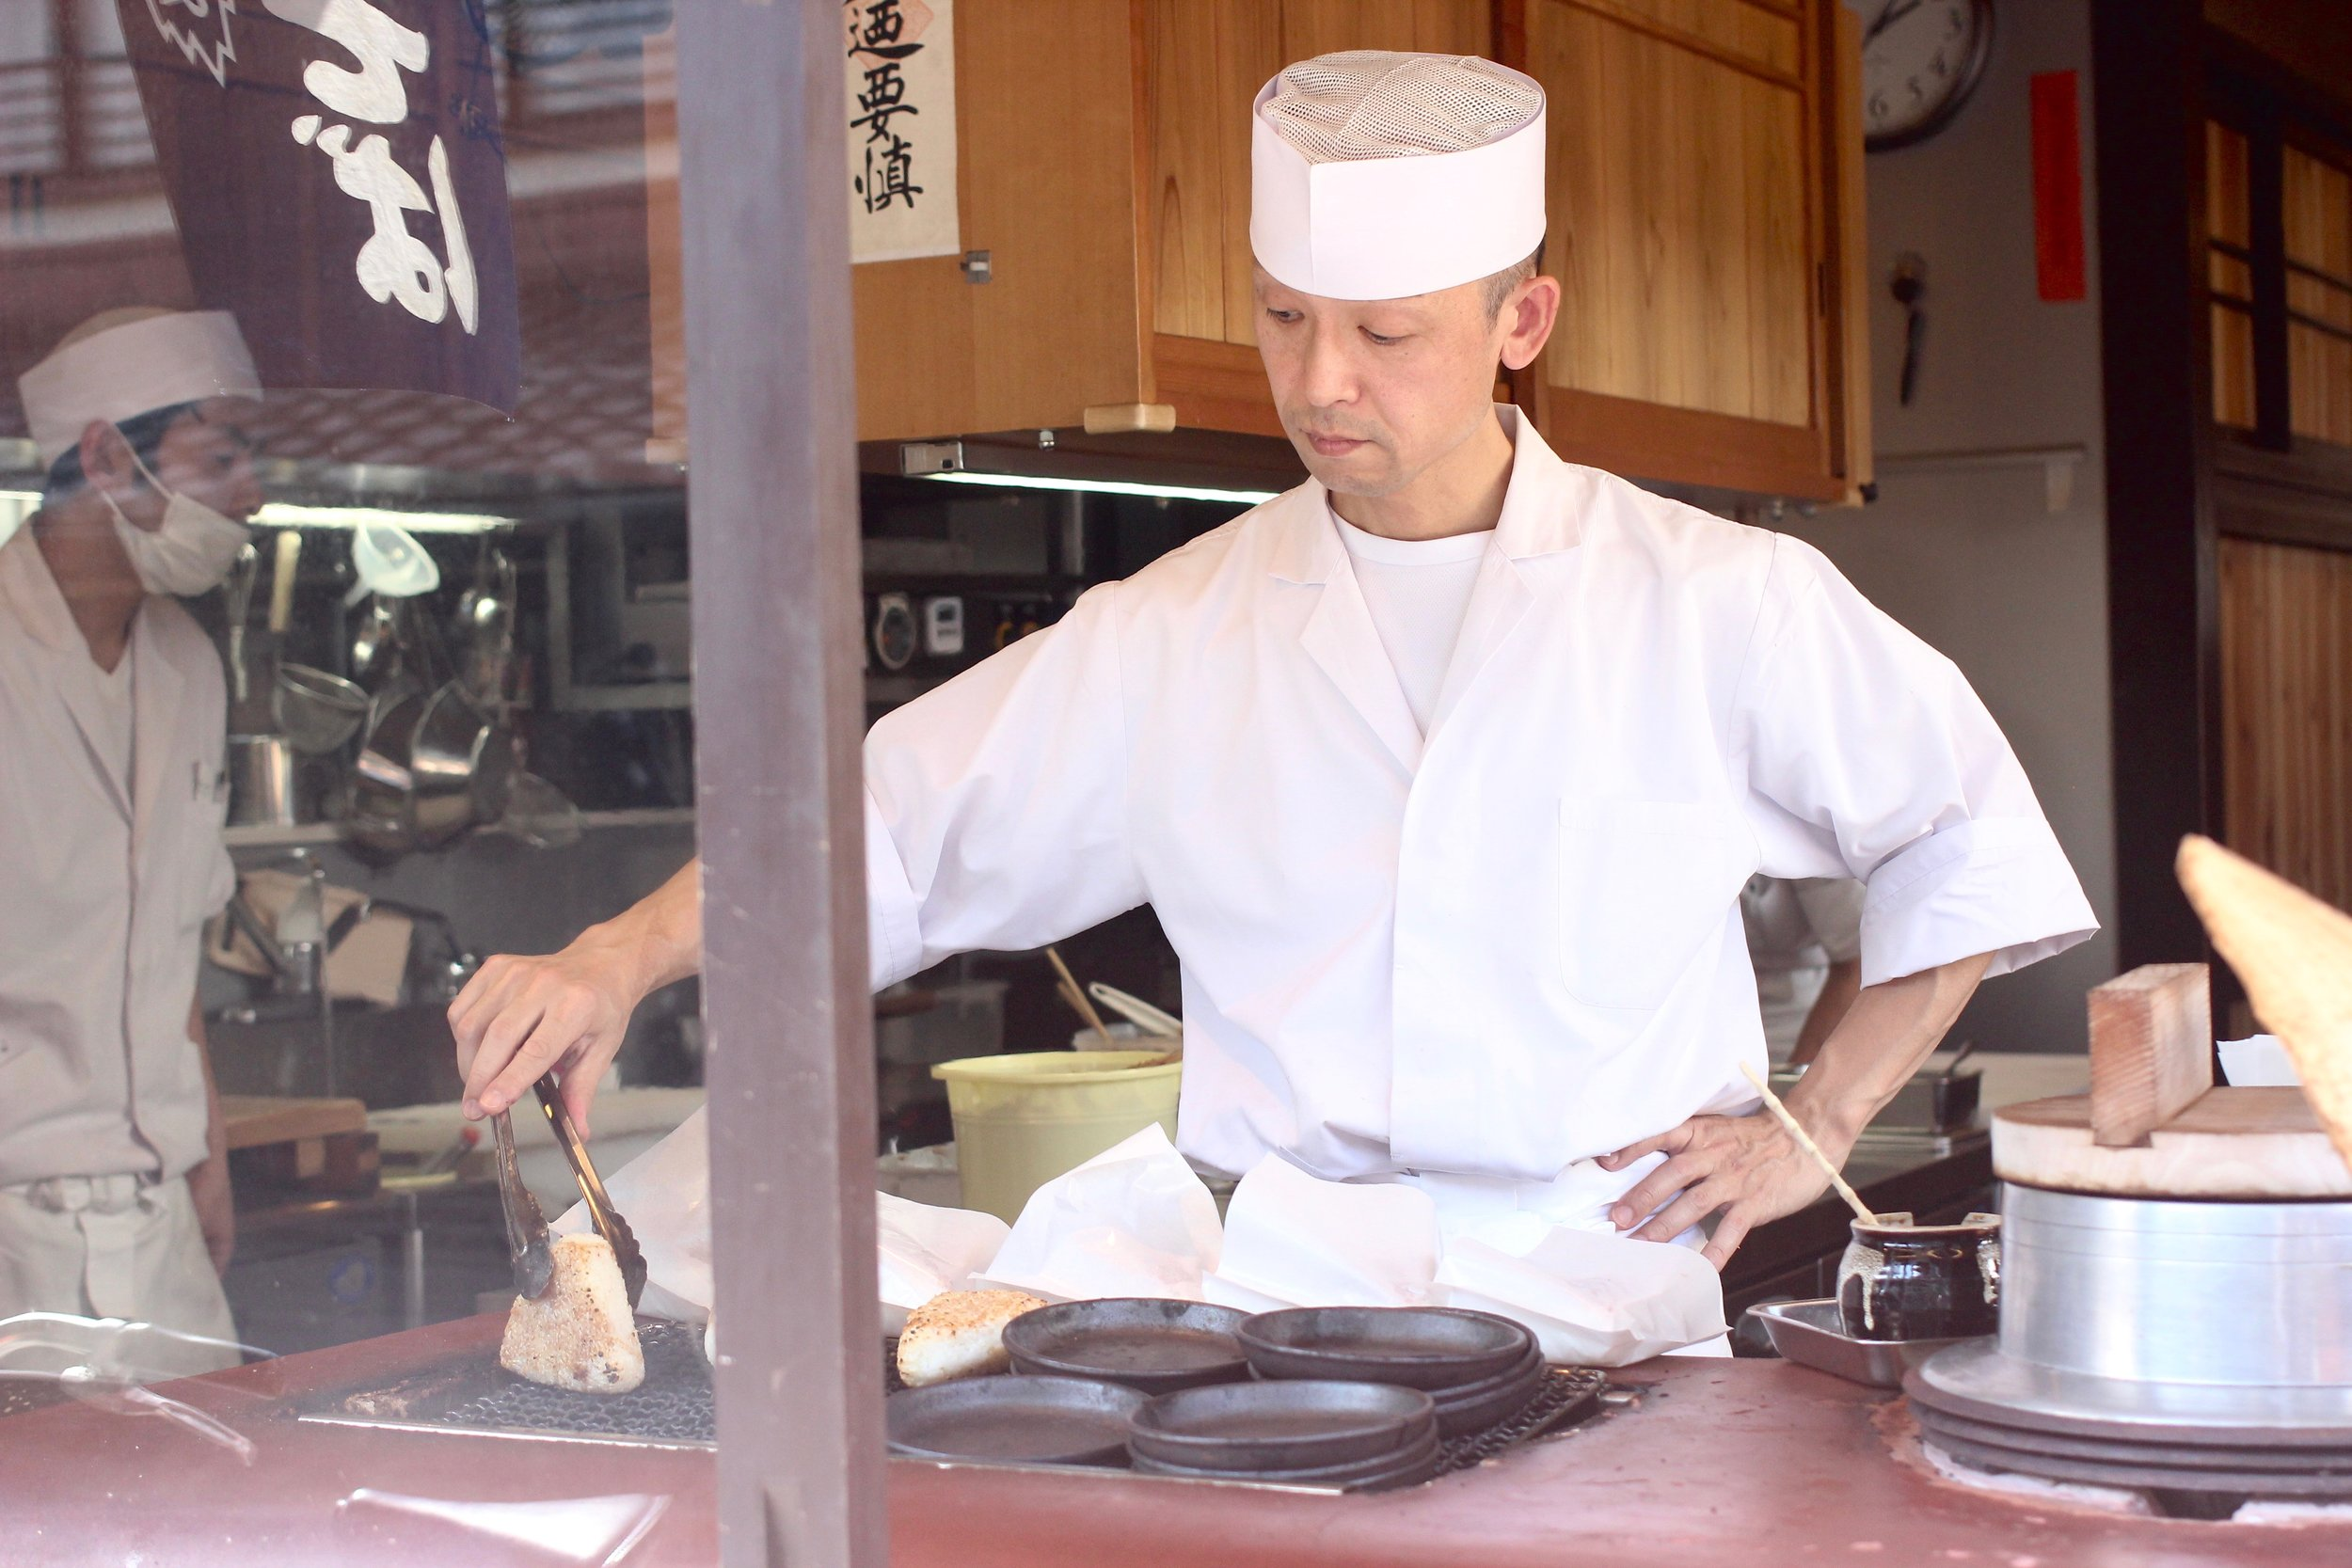 Hail to all the Japanese chefs